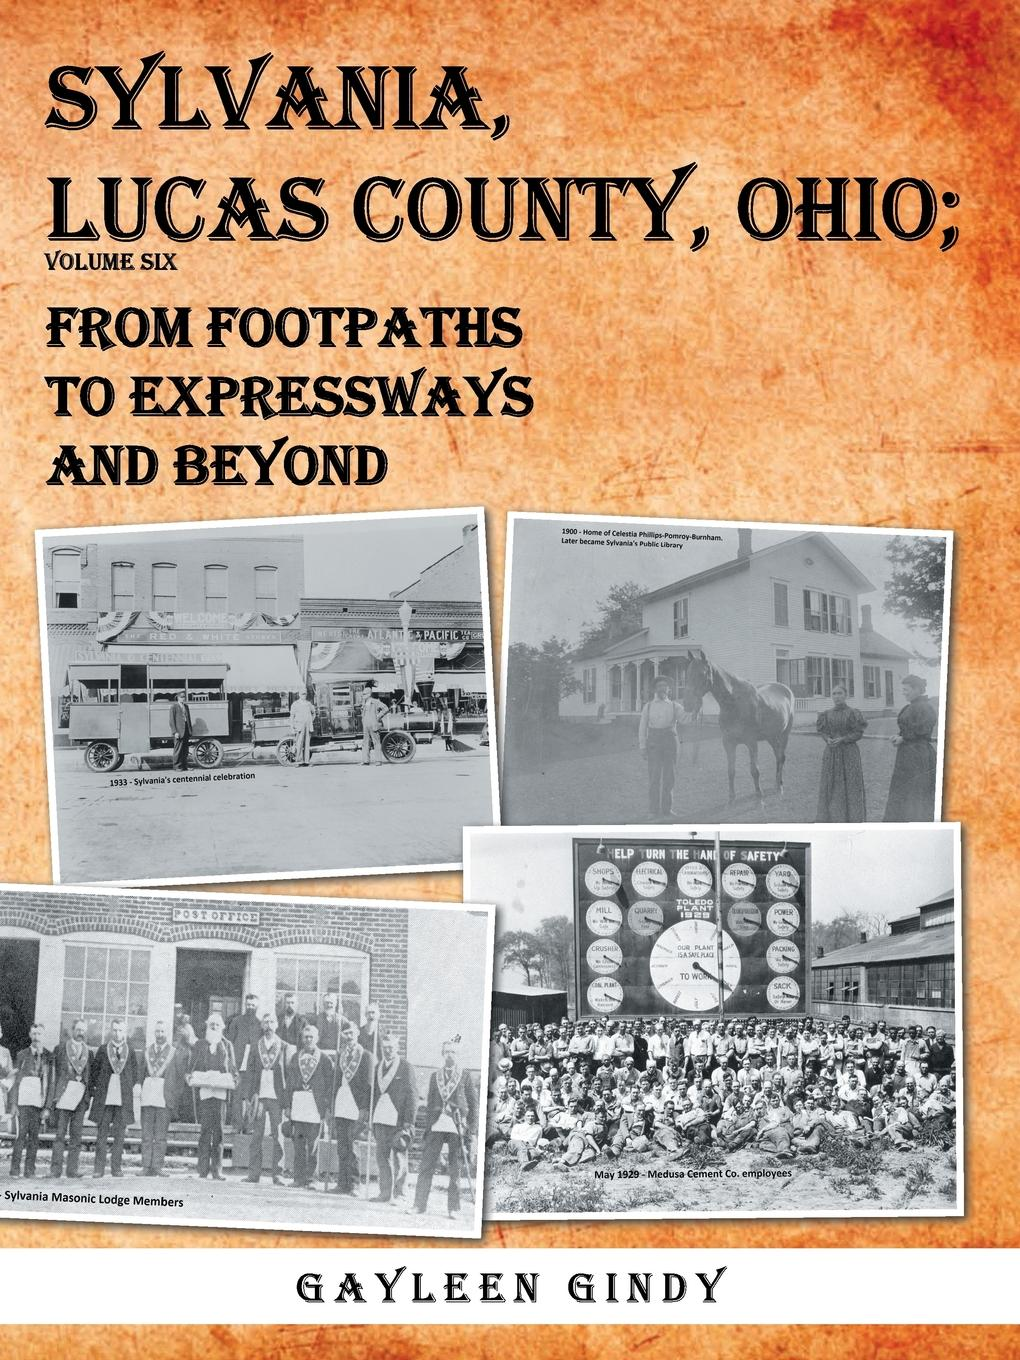 Gayleen Gindy Sylvania, Lucas County, Ohio. From Footpaths to Expressways and Beyond Volume Six